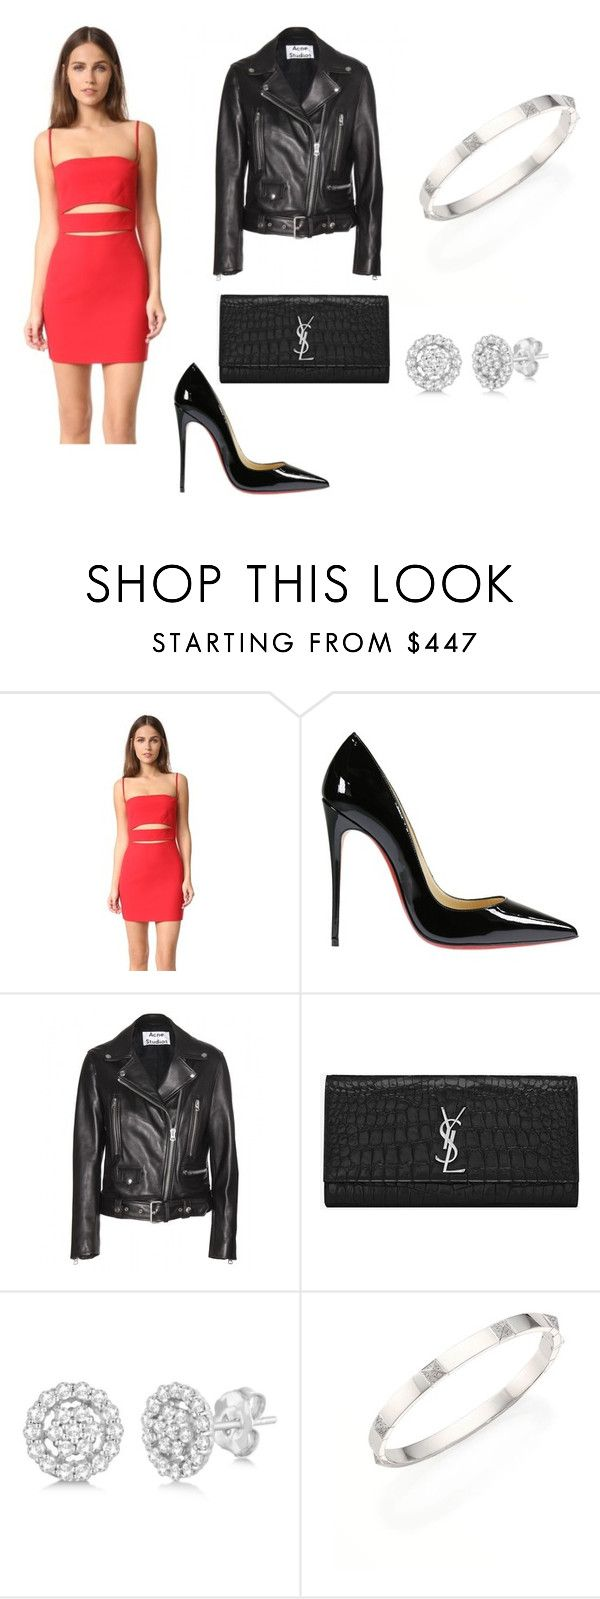 """Untitled #1048"" by alexachakir ❤ liked on Polyvore featuring Michelle Mason, Christian Louboutin, Acne Studios, Yves Saint Laurent, Allurez and Marli"